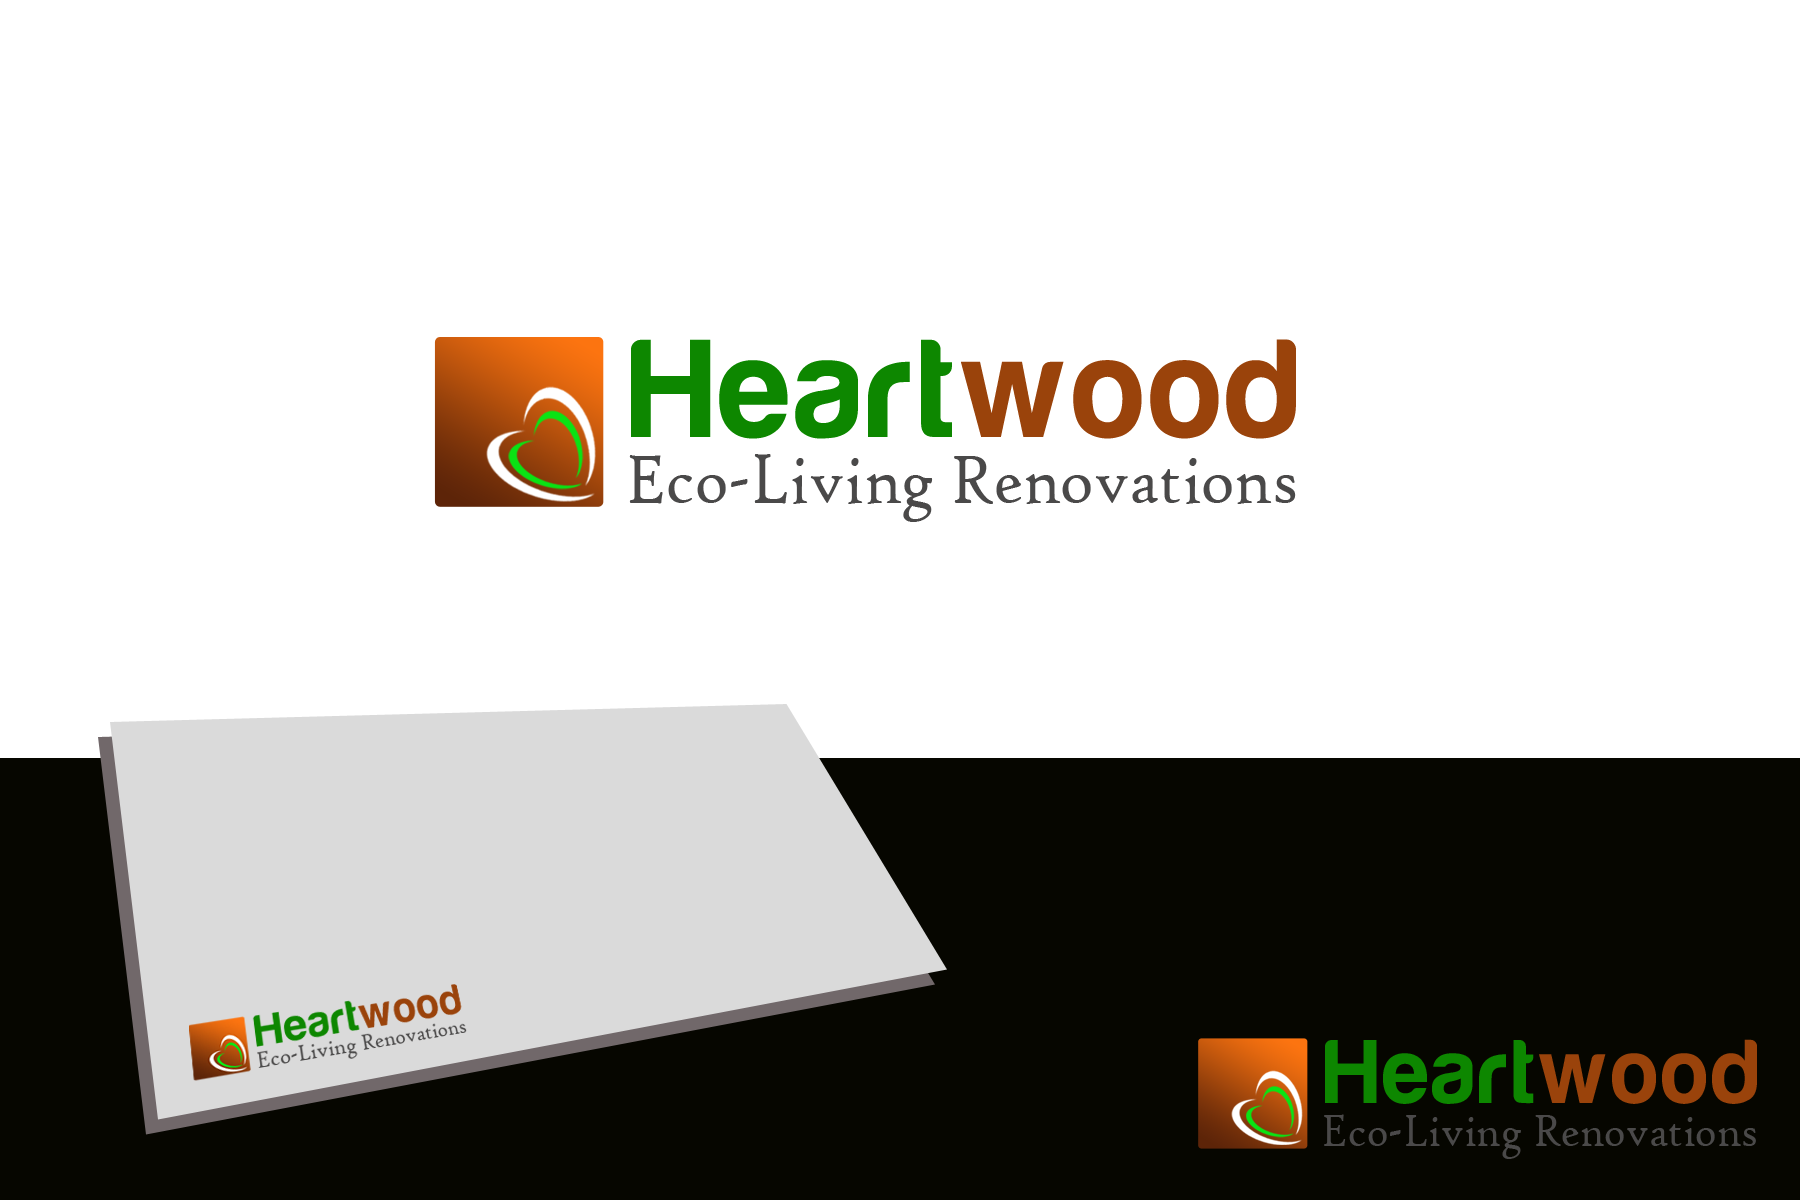 Logo Design by golden-hand - Entry No. 9 in the Logo Design Contest New Logo Design for Heartwood Eco-Living Renovations.